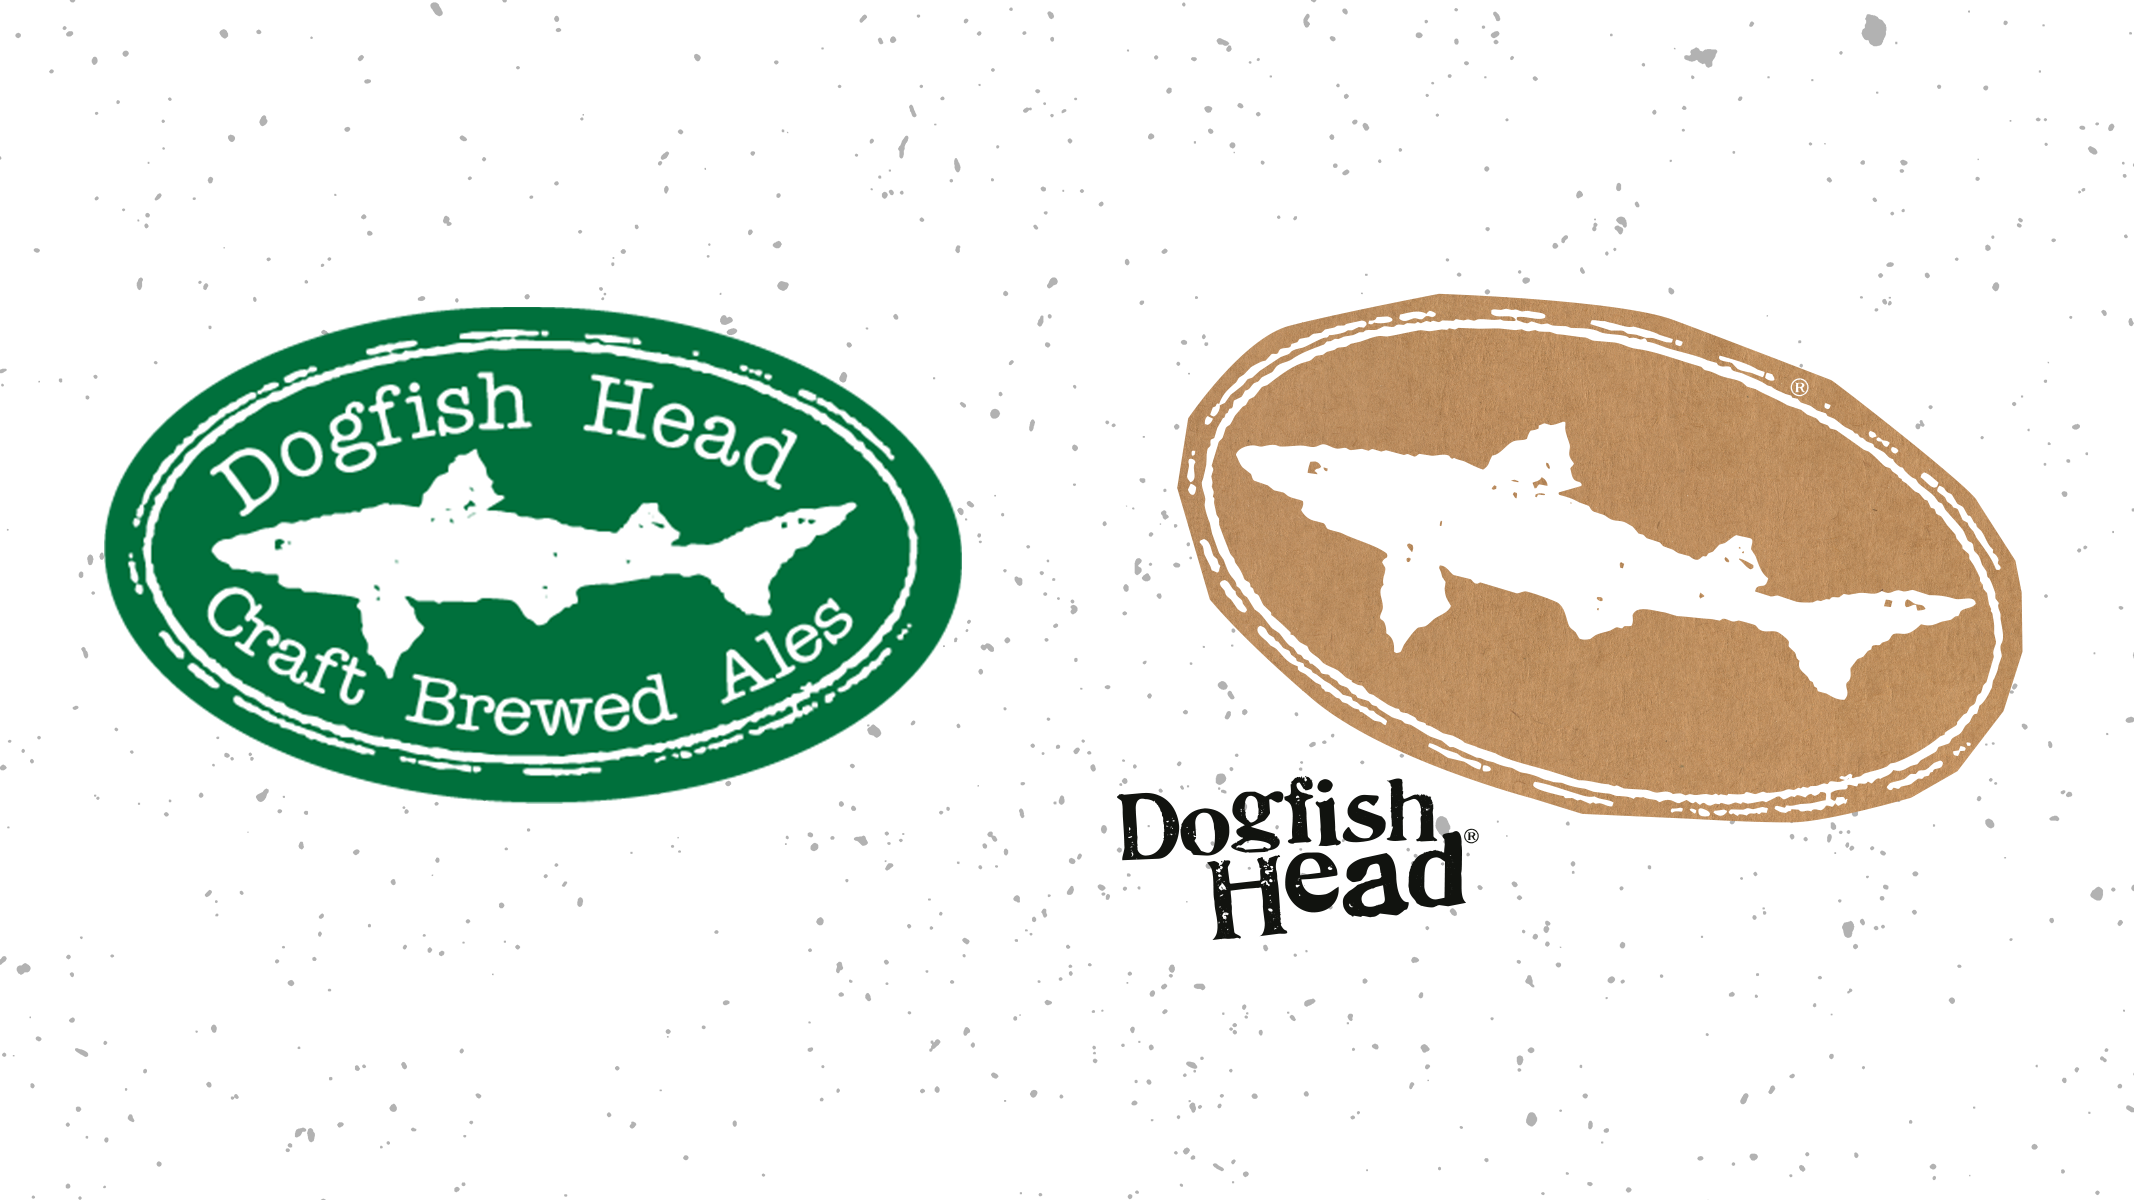 Dogfish Head logo before and after.